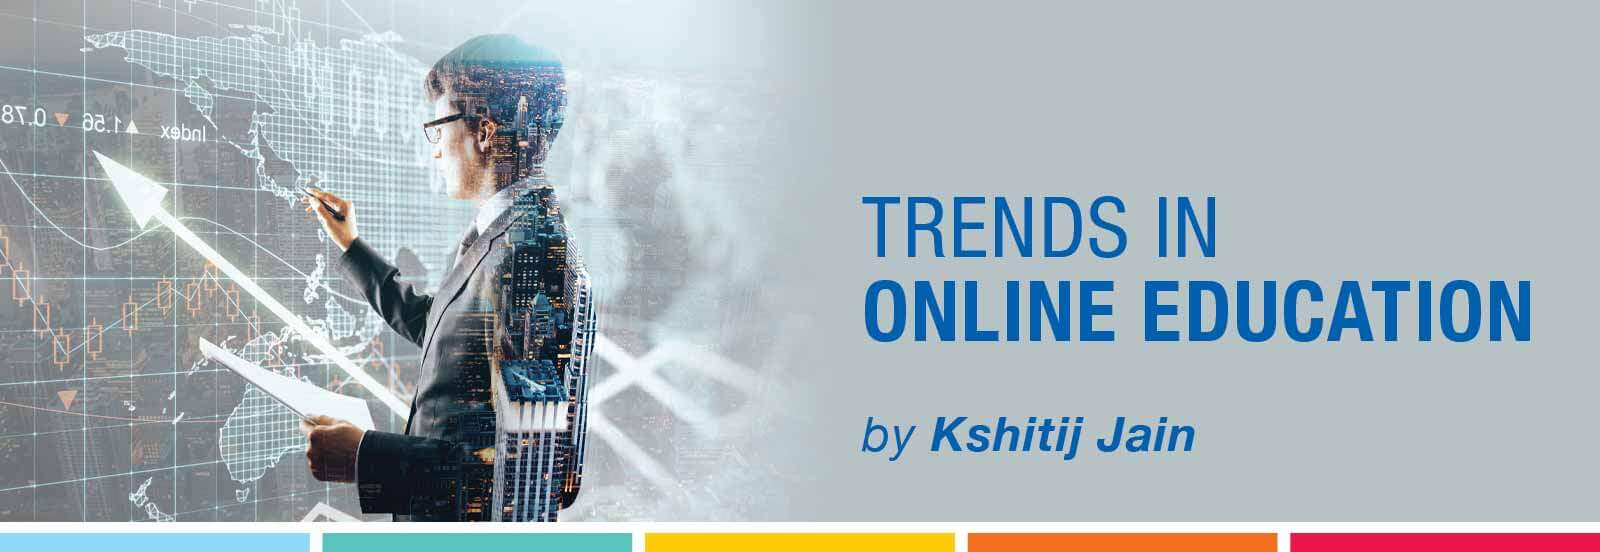 Trends in online education